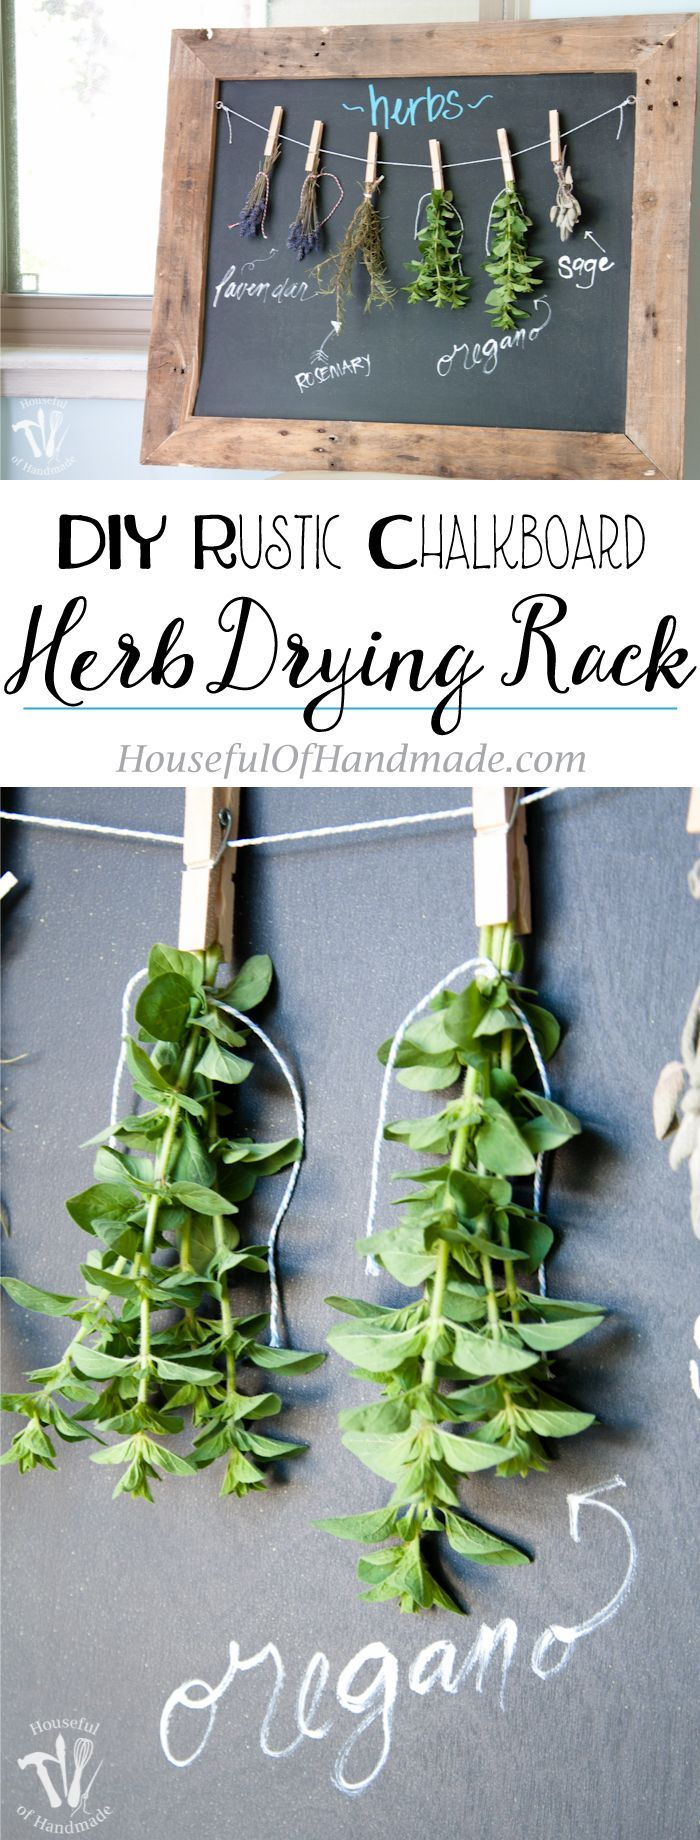 Make drying your herbs a part of your decor with this DIY rustic chalkboard herb drying rack. Made from an old pallet it makes preserving herbs beautiful.